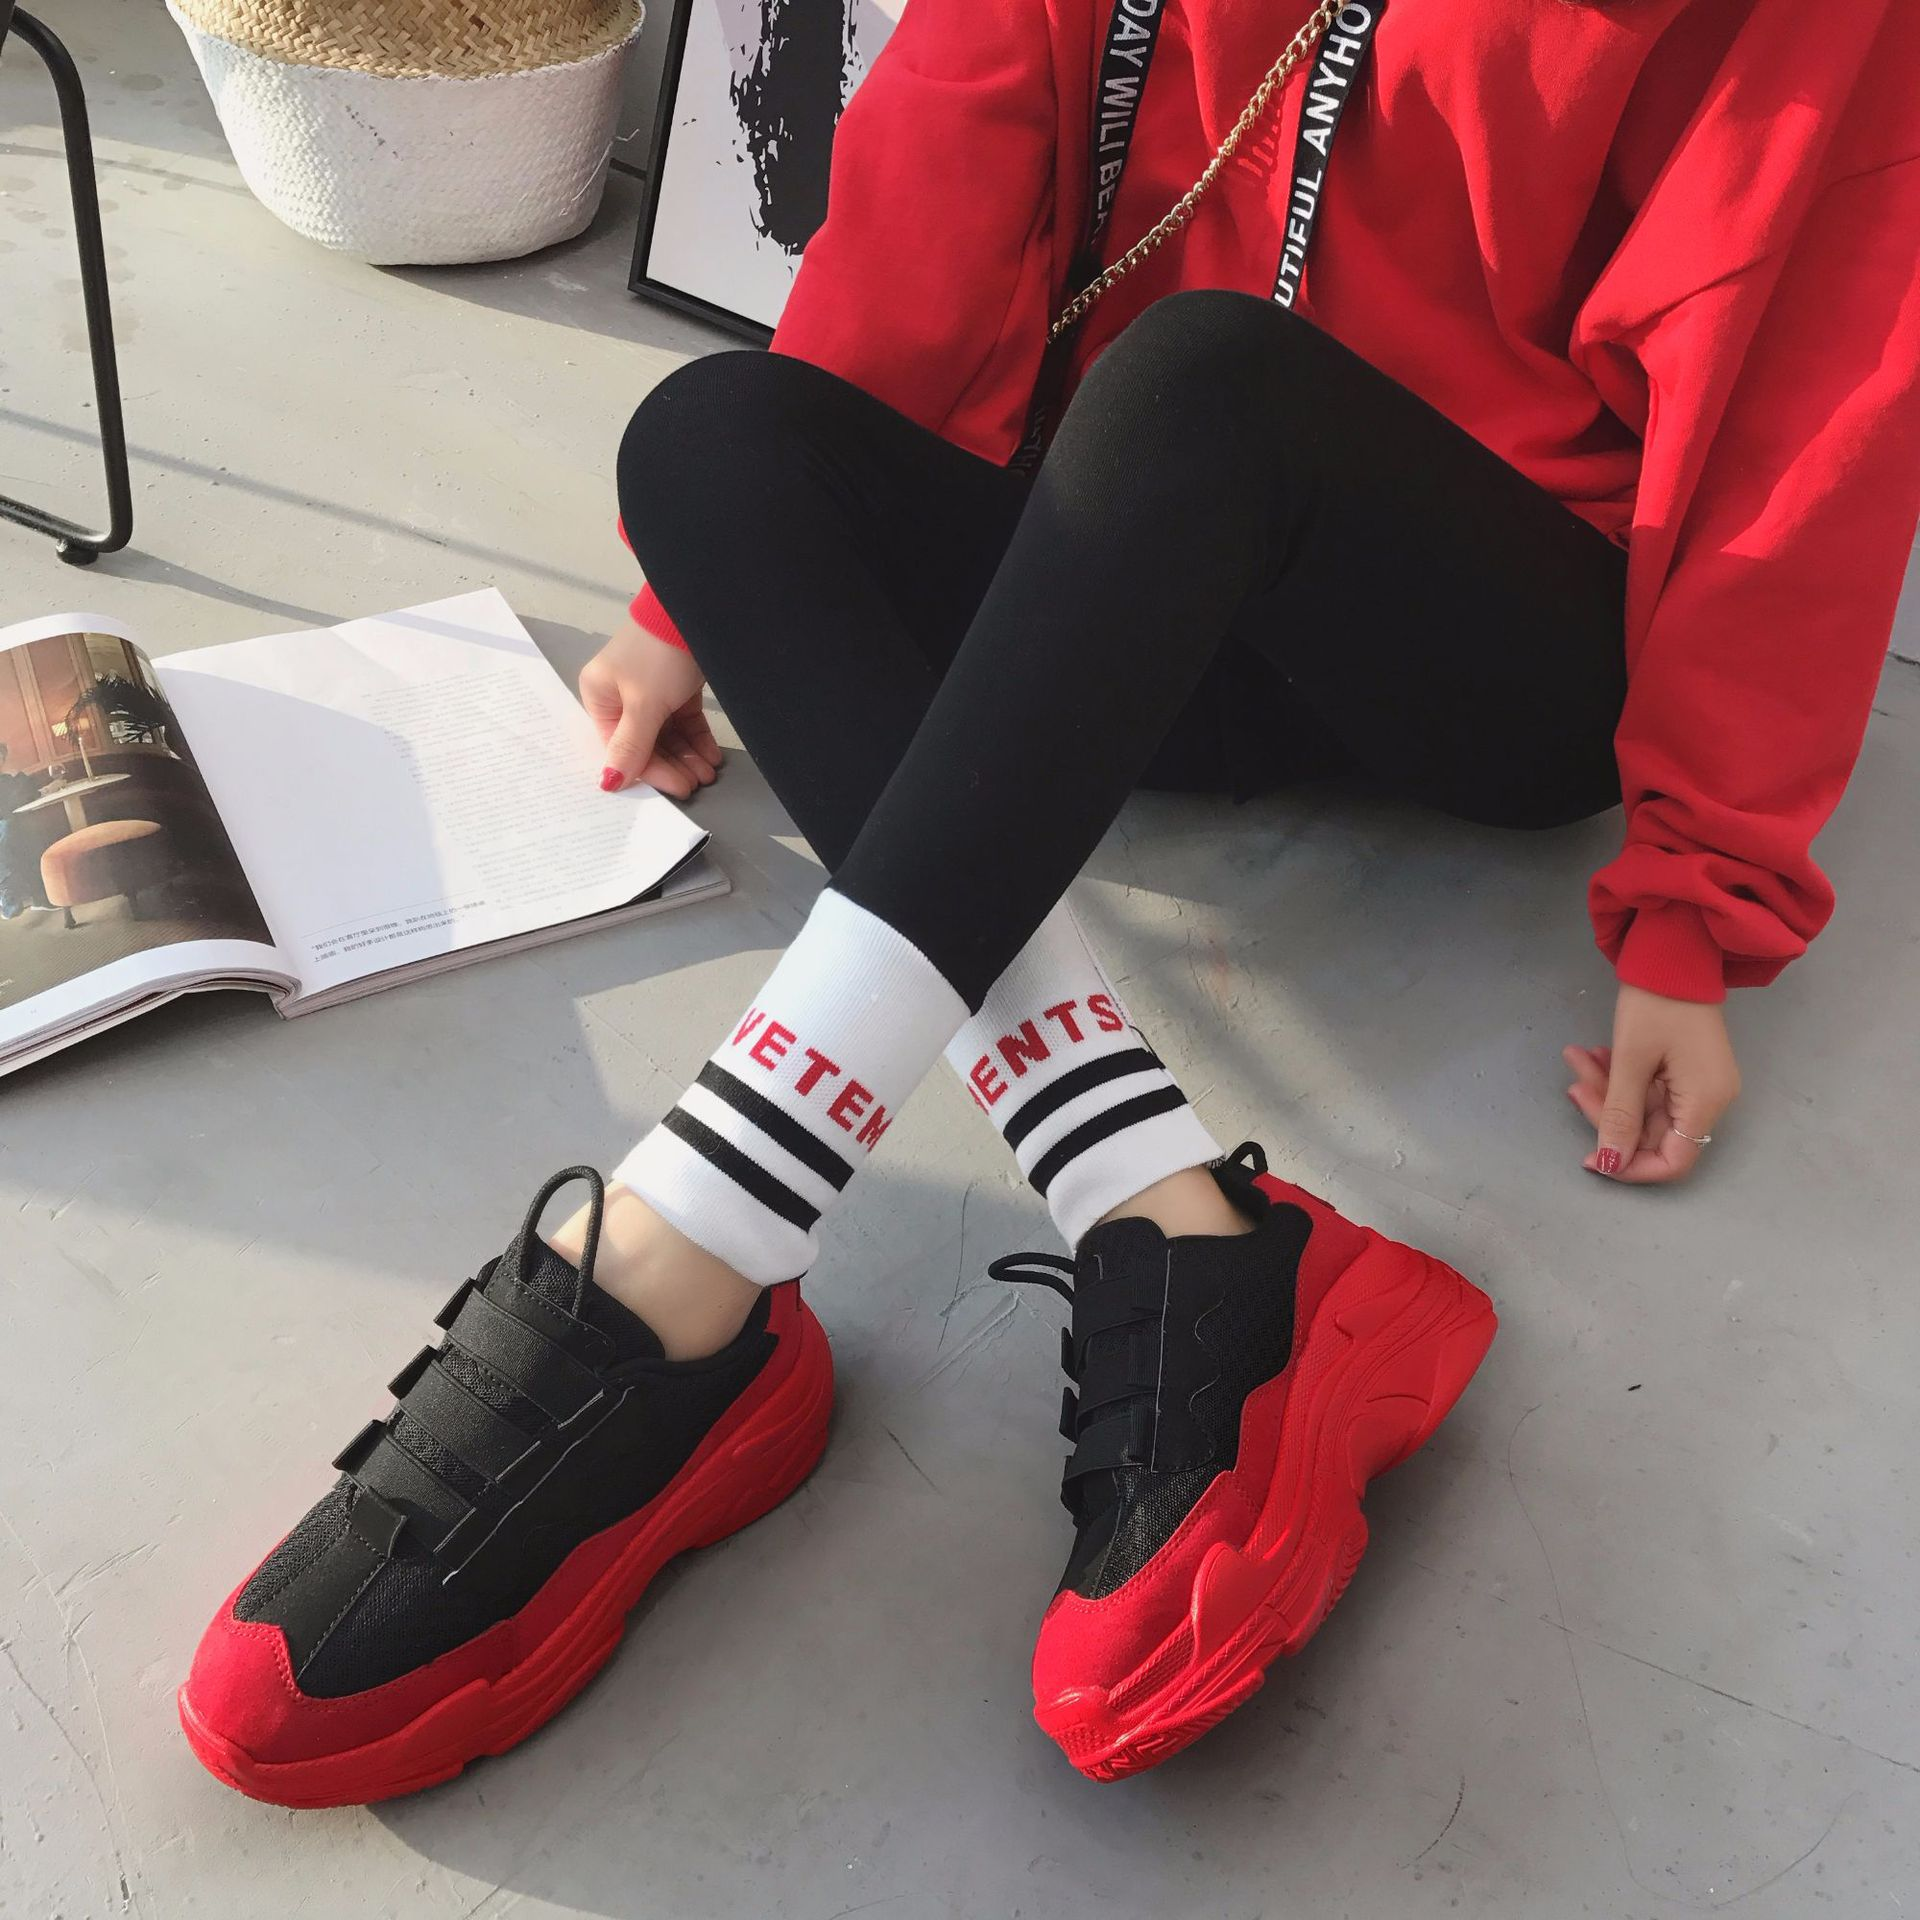 Mesh Womens High Platform Sneakers 2018 Fashion Women Red Black Dad Shoes Ladies Casual Chunky Footwear Women Chaussures FemmeMesh Womens High Platform Sneakers 2018 Fashion Women Red Black Dad Shoes Ladies Casual Chunky Footwear Women Chaussures Femme